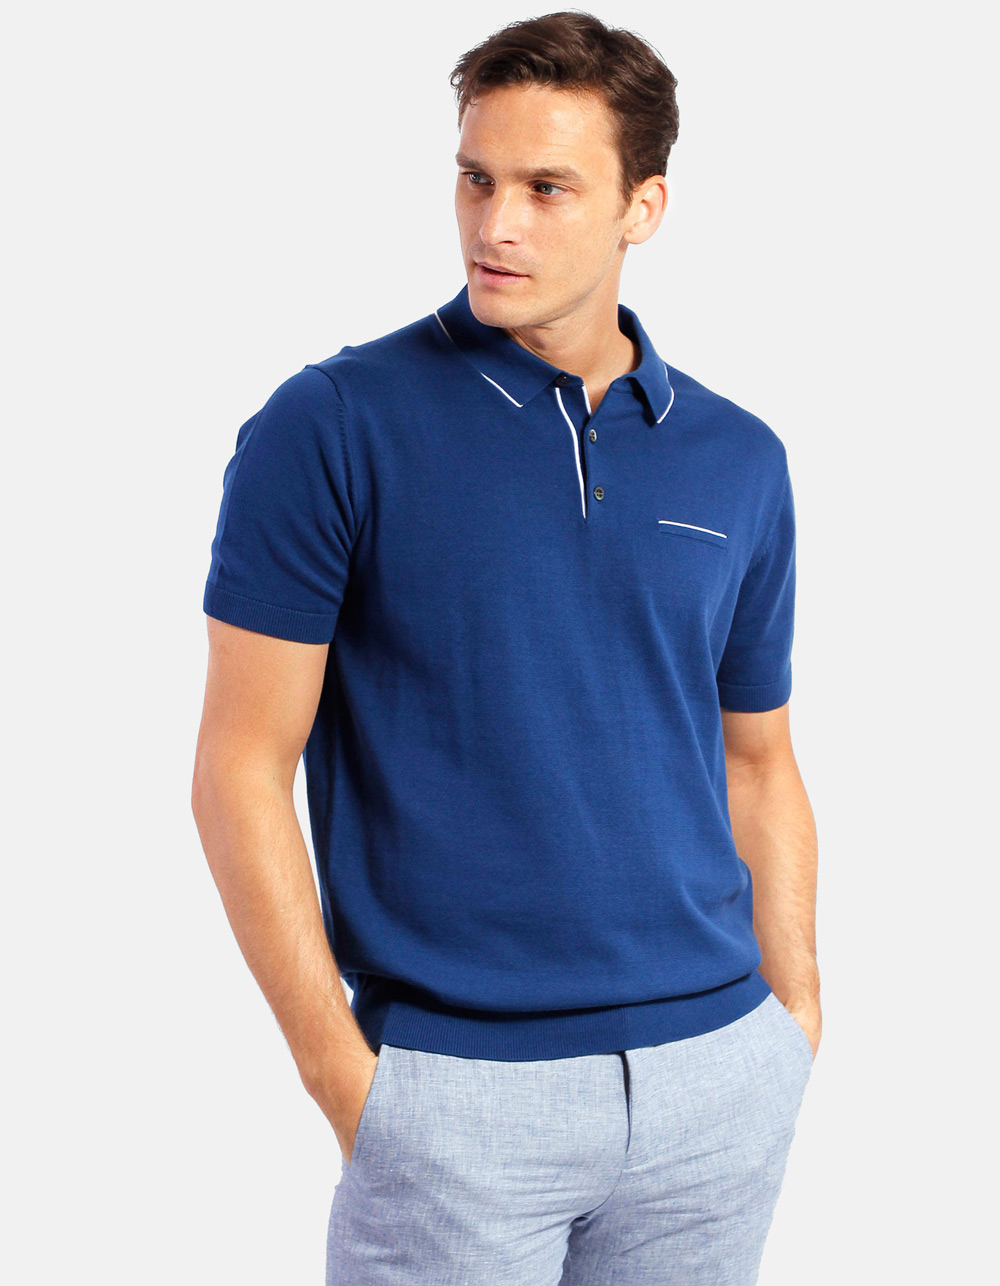 Navy white line knit polo